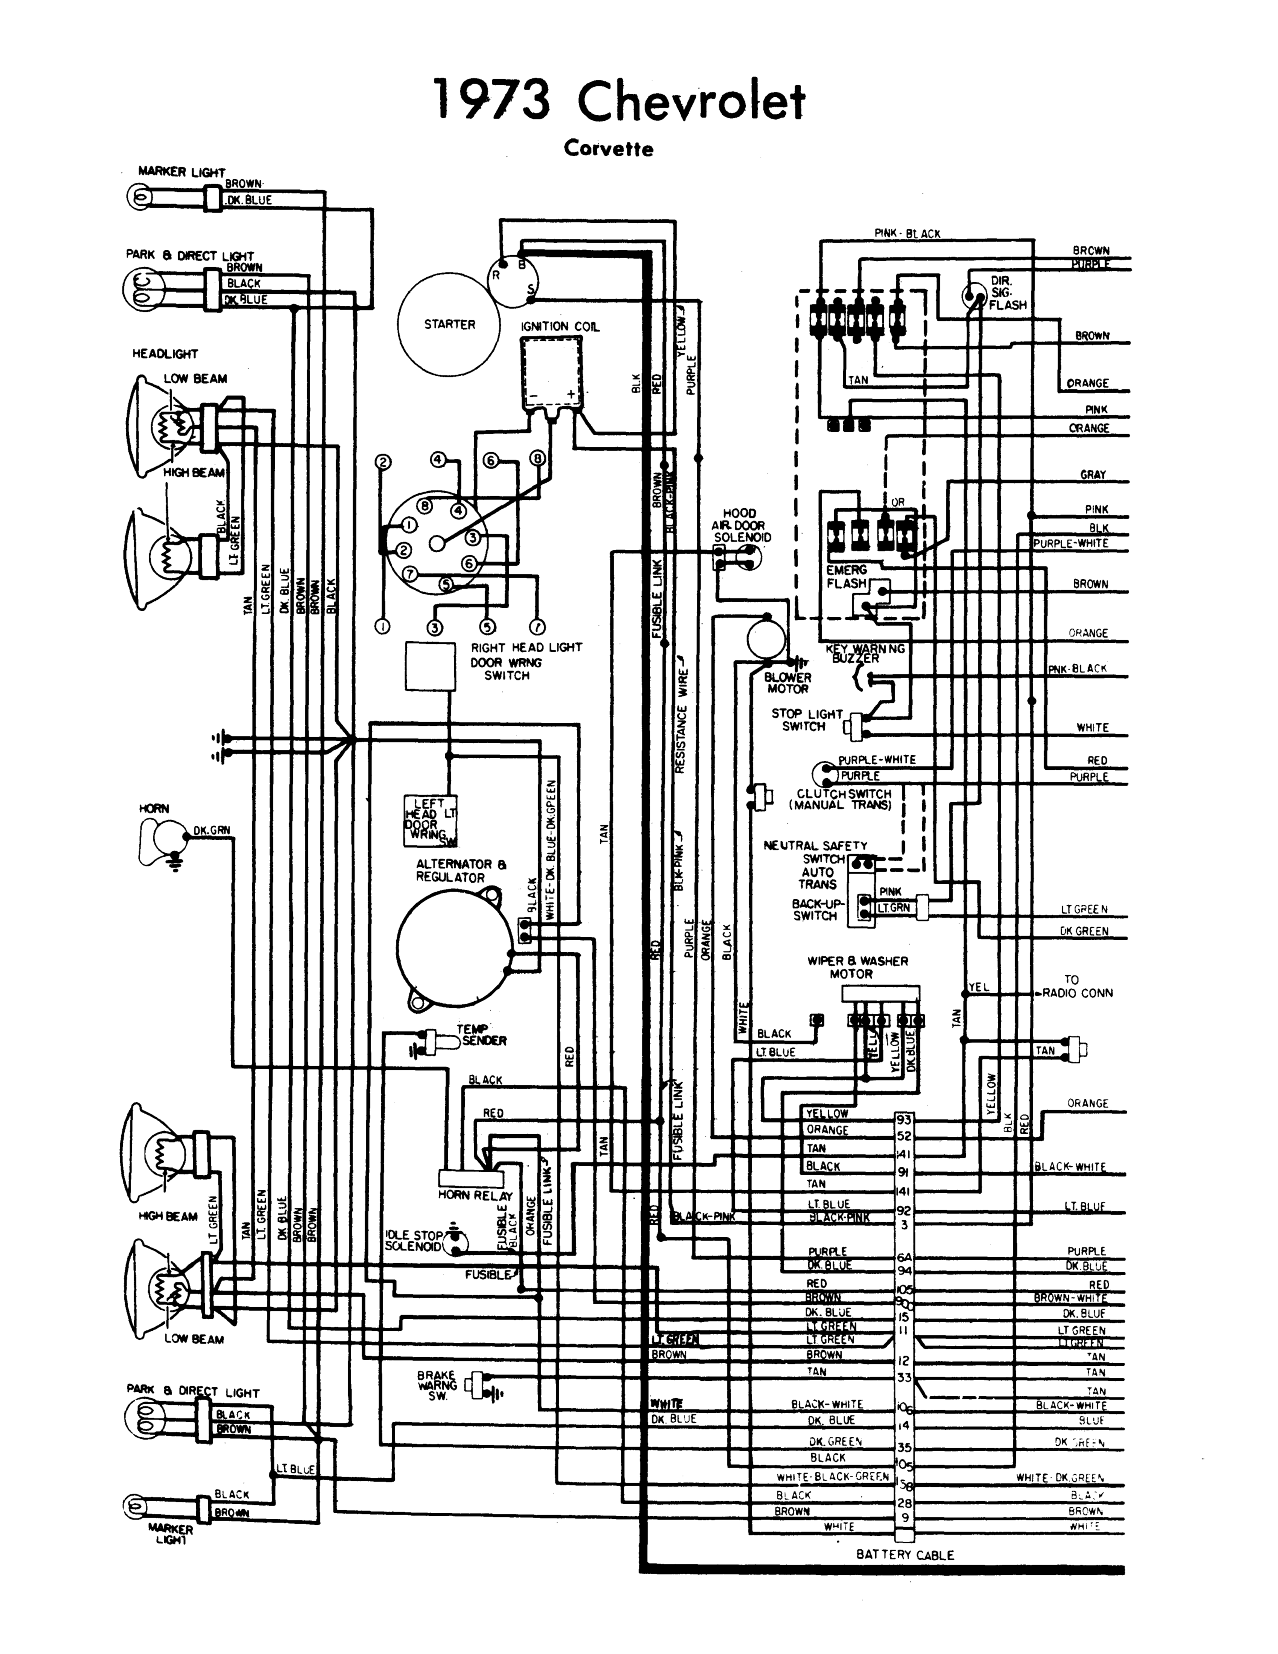 1980 corvette wiring schematic schematics wiring diagrams u2022 rh  parntesis co 1982 Corvette Fuse Panel Diagram 82 Corvette Fuse Box Diagram